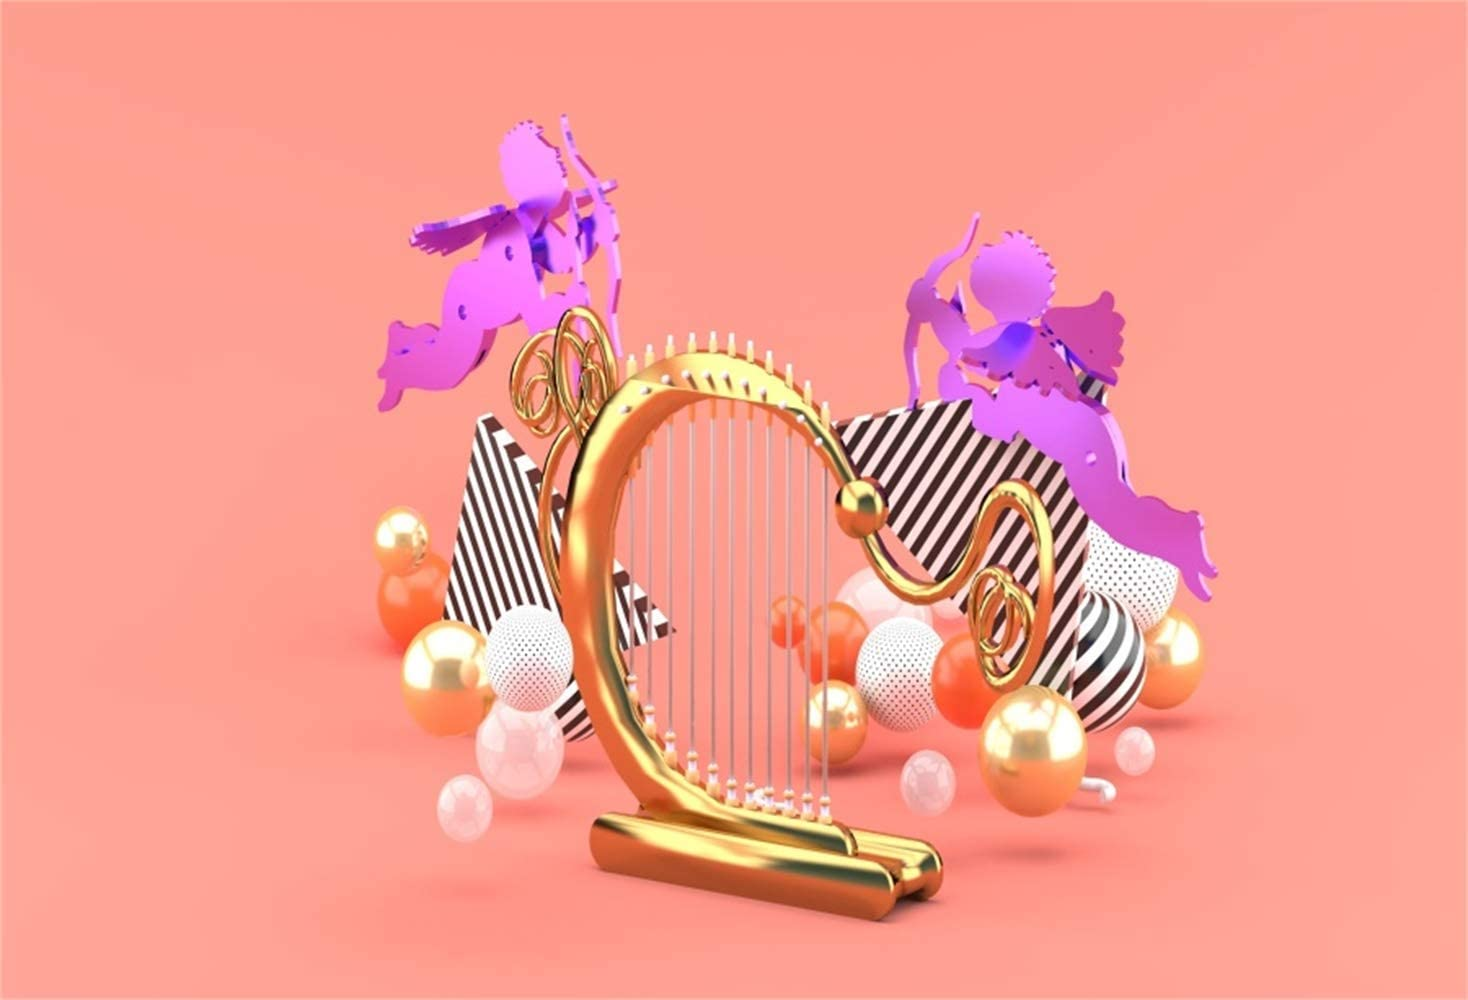 Vinyl 10x7ft Creative Valentines Day Photography Background Golden Harp Purple Cupid Models Balls 3D Artifact OrangeRed Backdrops Lovers Couples Portraits Shoot Party Decoration